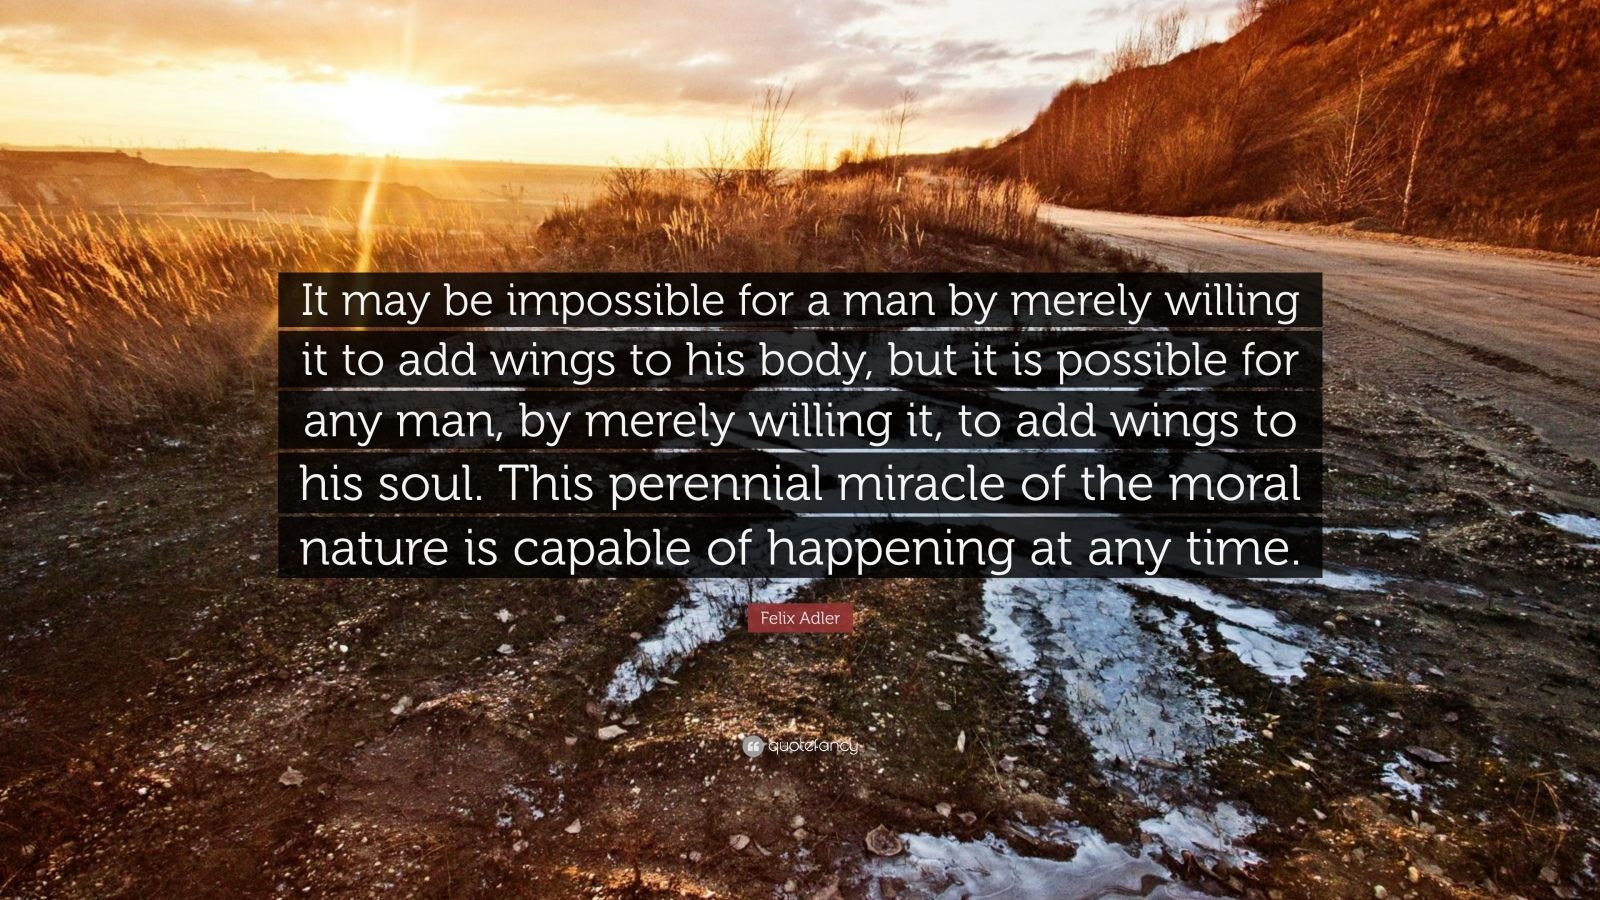 "Felix Adler Quote: ""It may be impossible for a man by merely willing it to add wings to his body, but it is possible for any man, by merely willing it, to add wings to his soul. This perennial miracle of the moral nature is capable of happening at any time."""